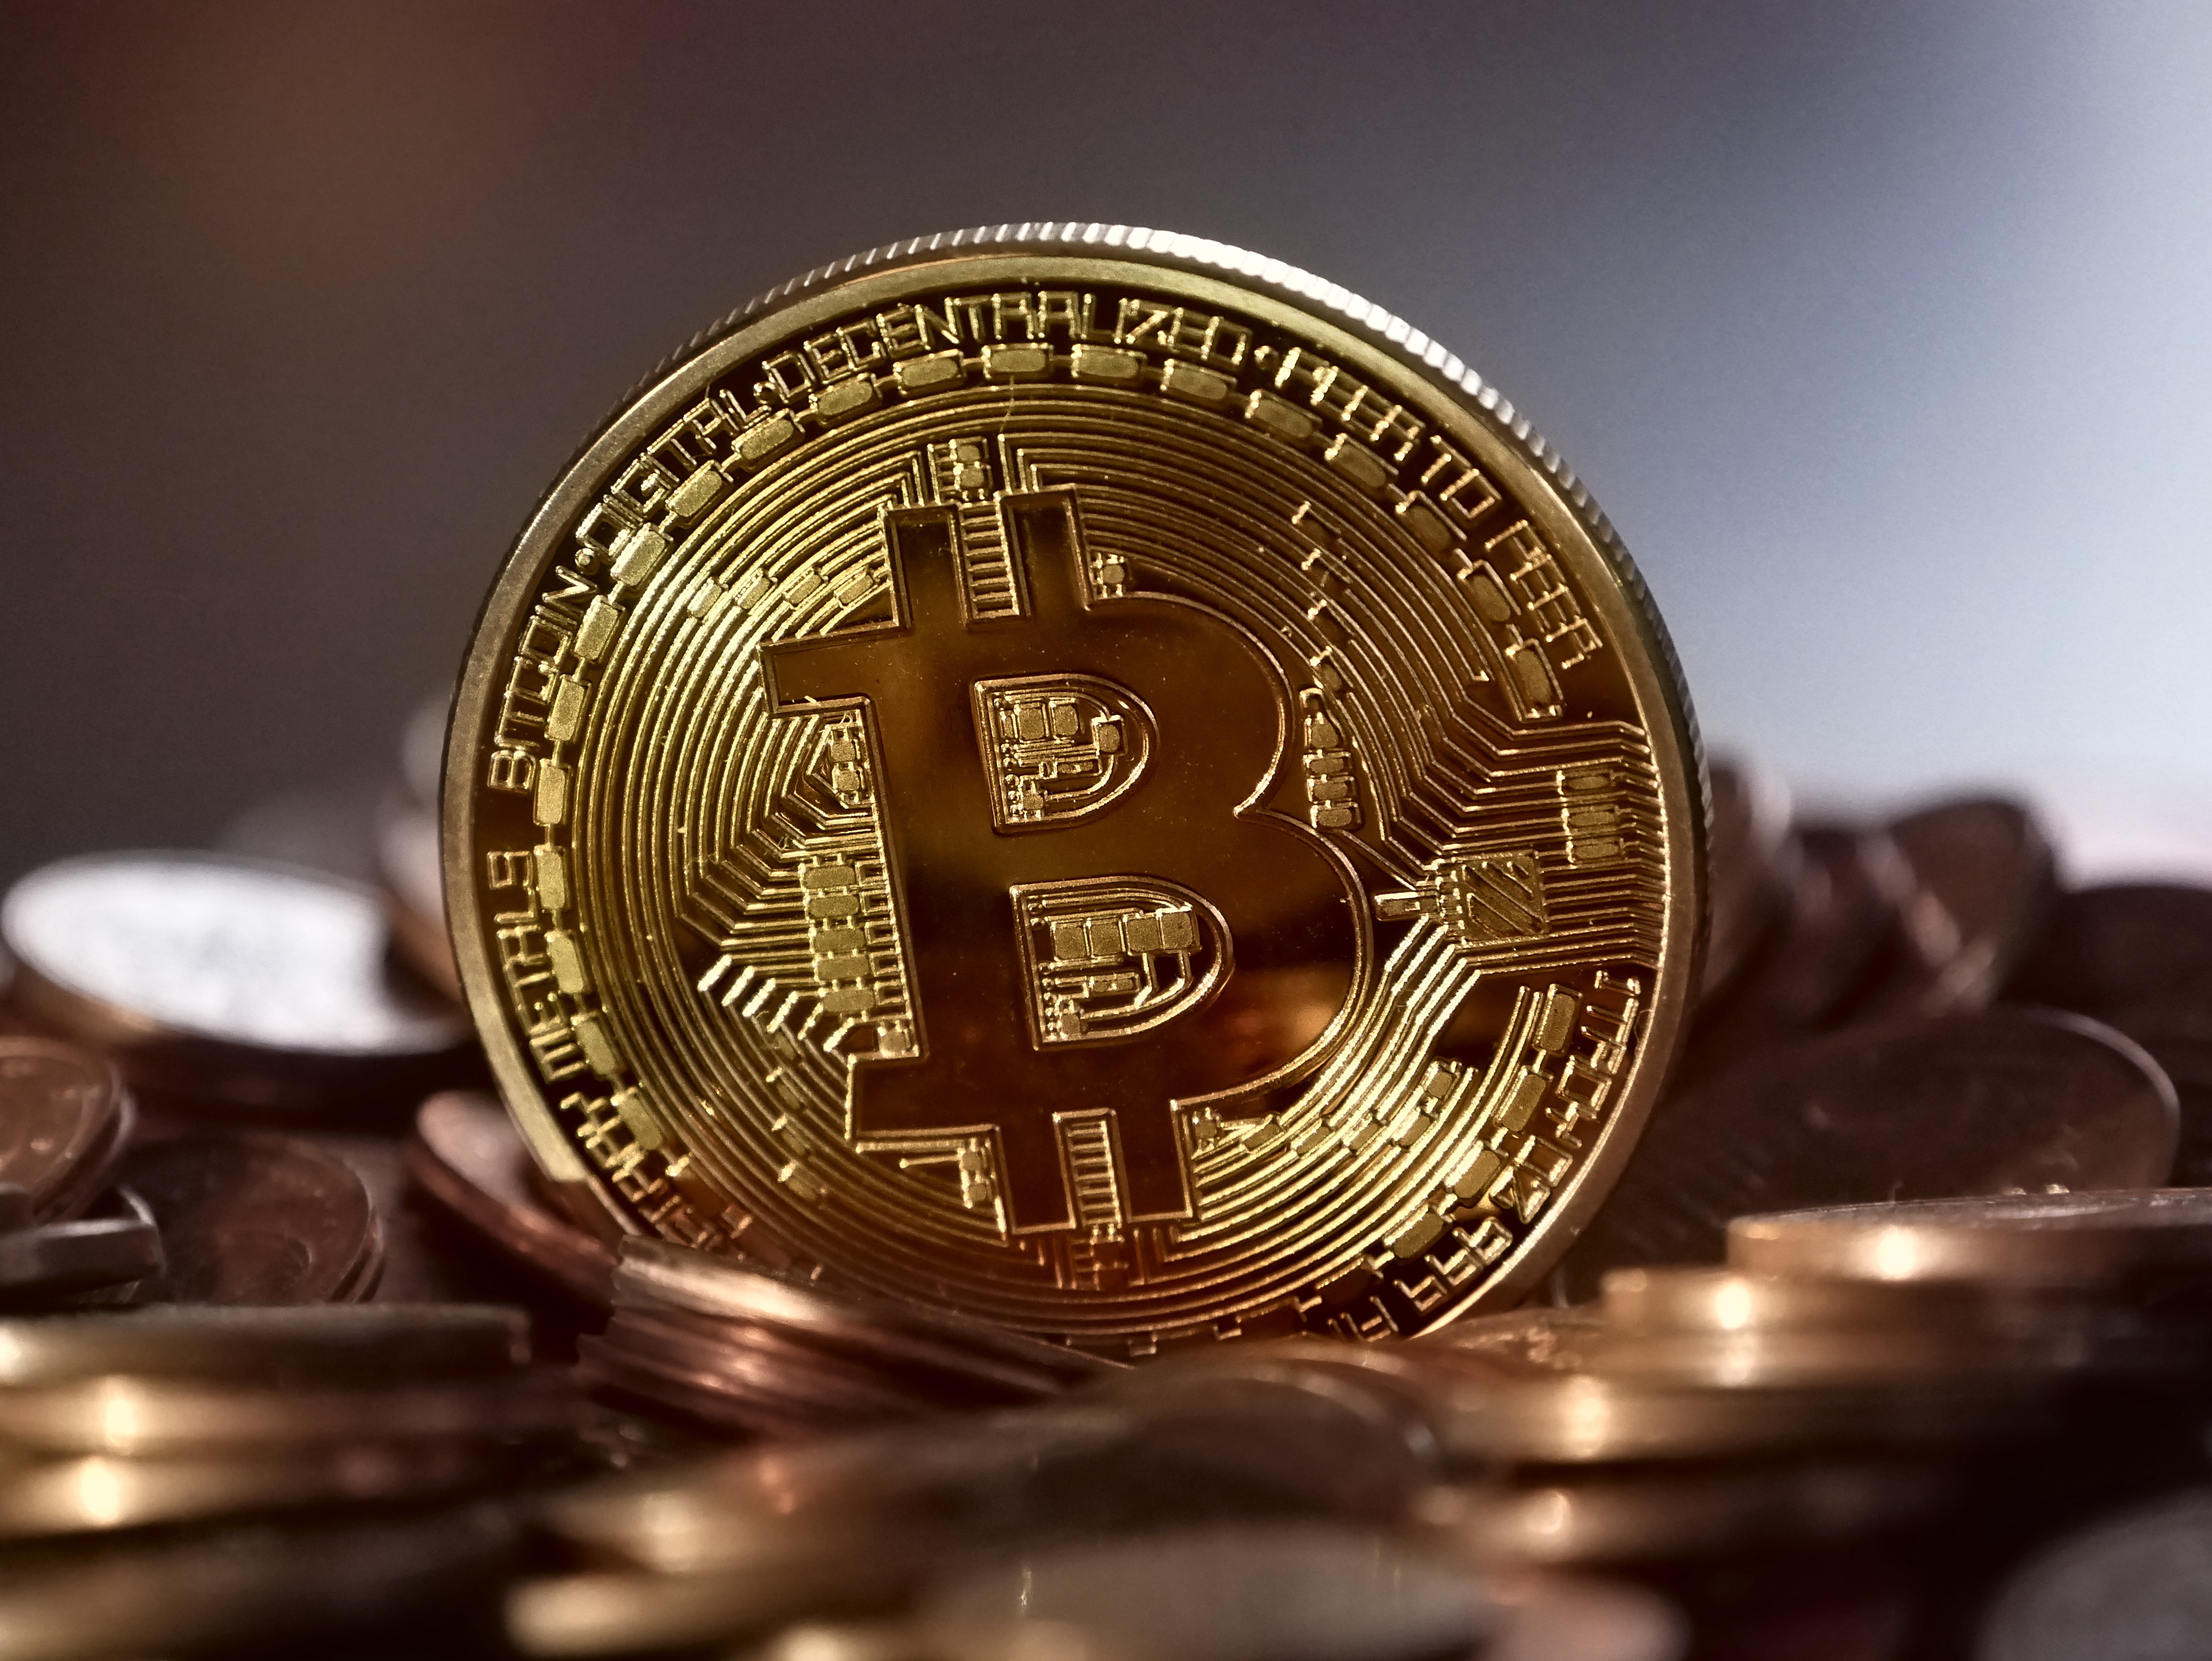 81 Bitcoin Hd Wallpapers Background Images Wallpaper Abyss